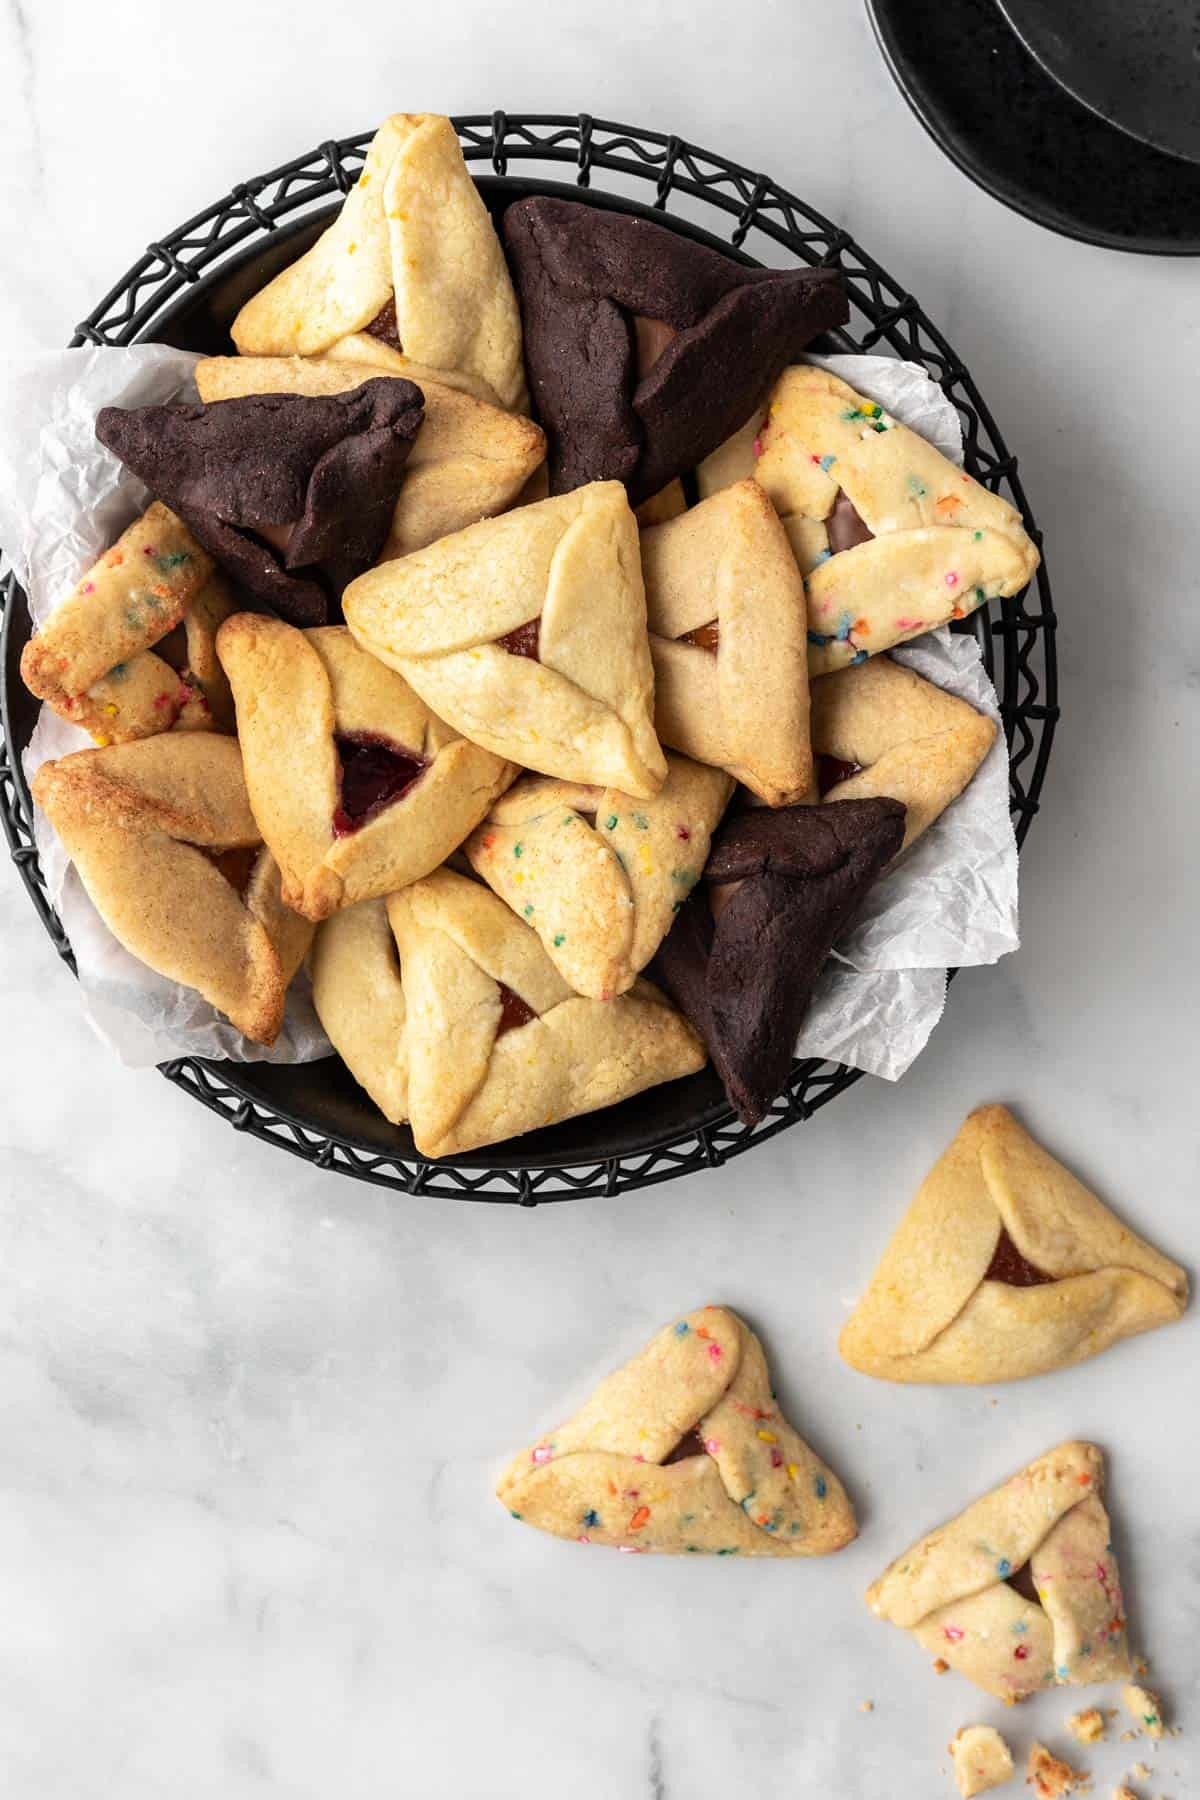 A variety of hamantaschen piled in a black bowl with 3 below it.